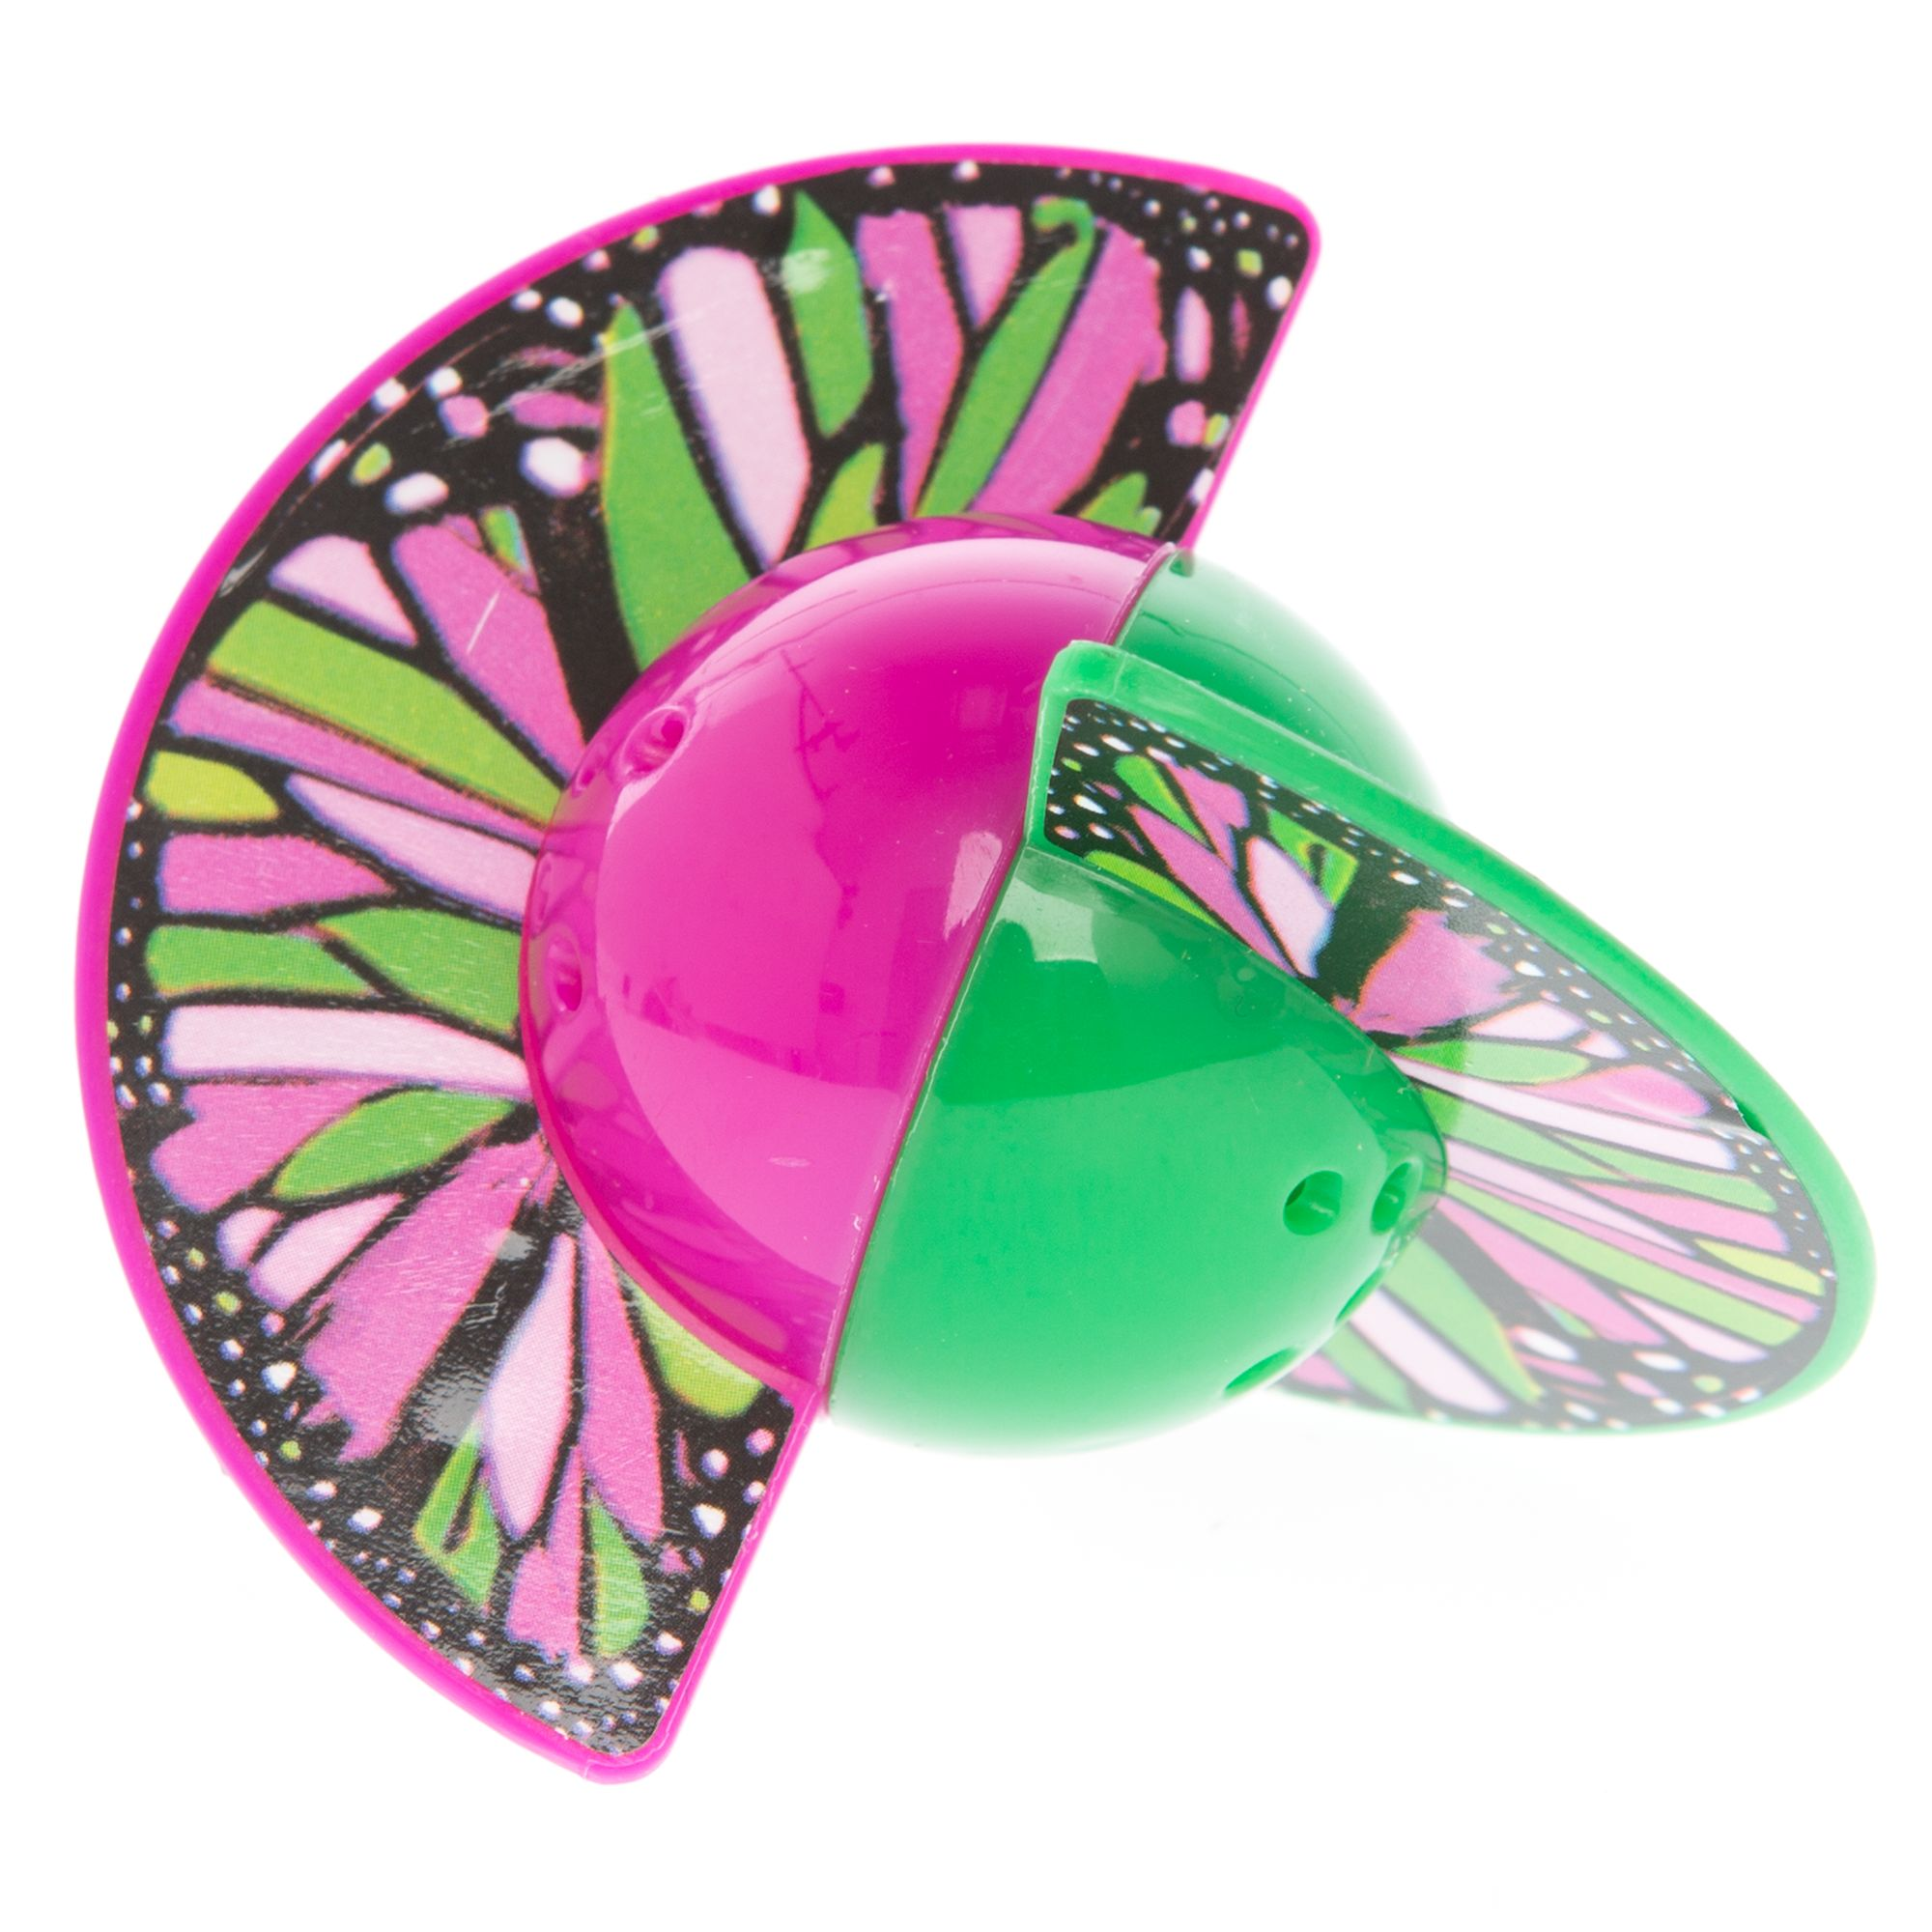 OurPets® Butterfly Roller Cat Toy 5257896